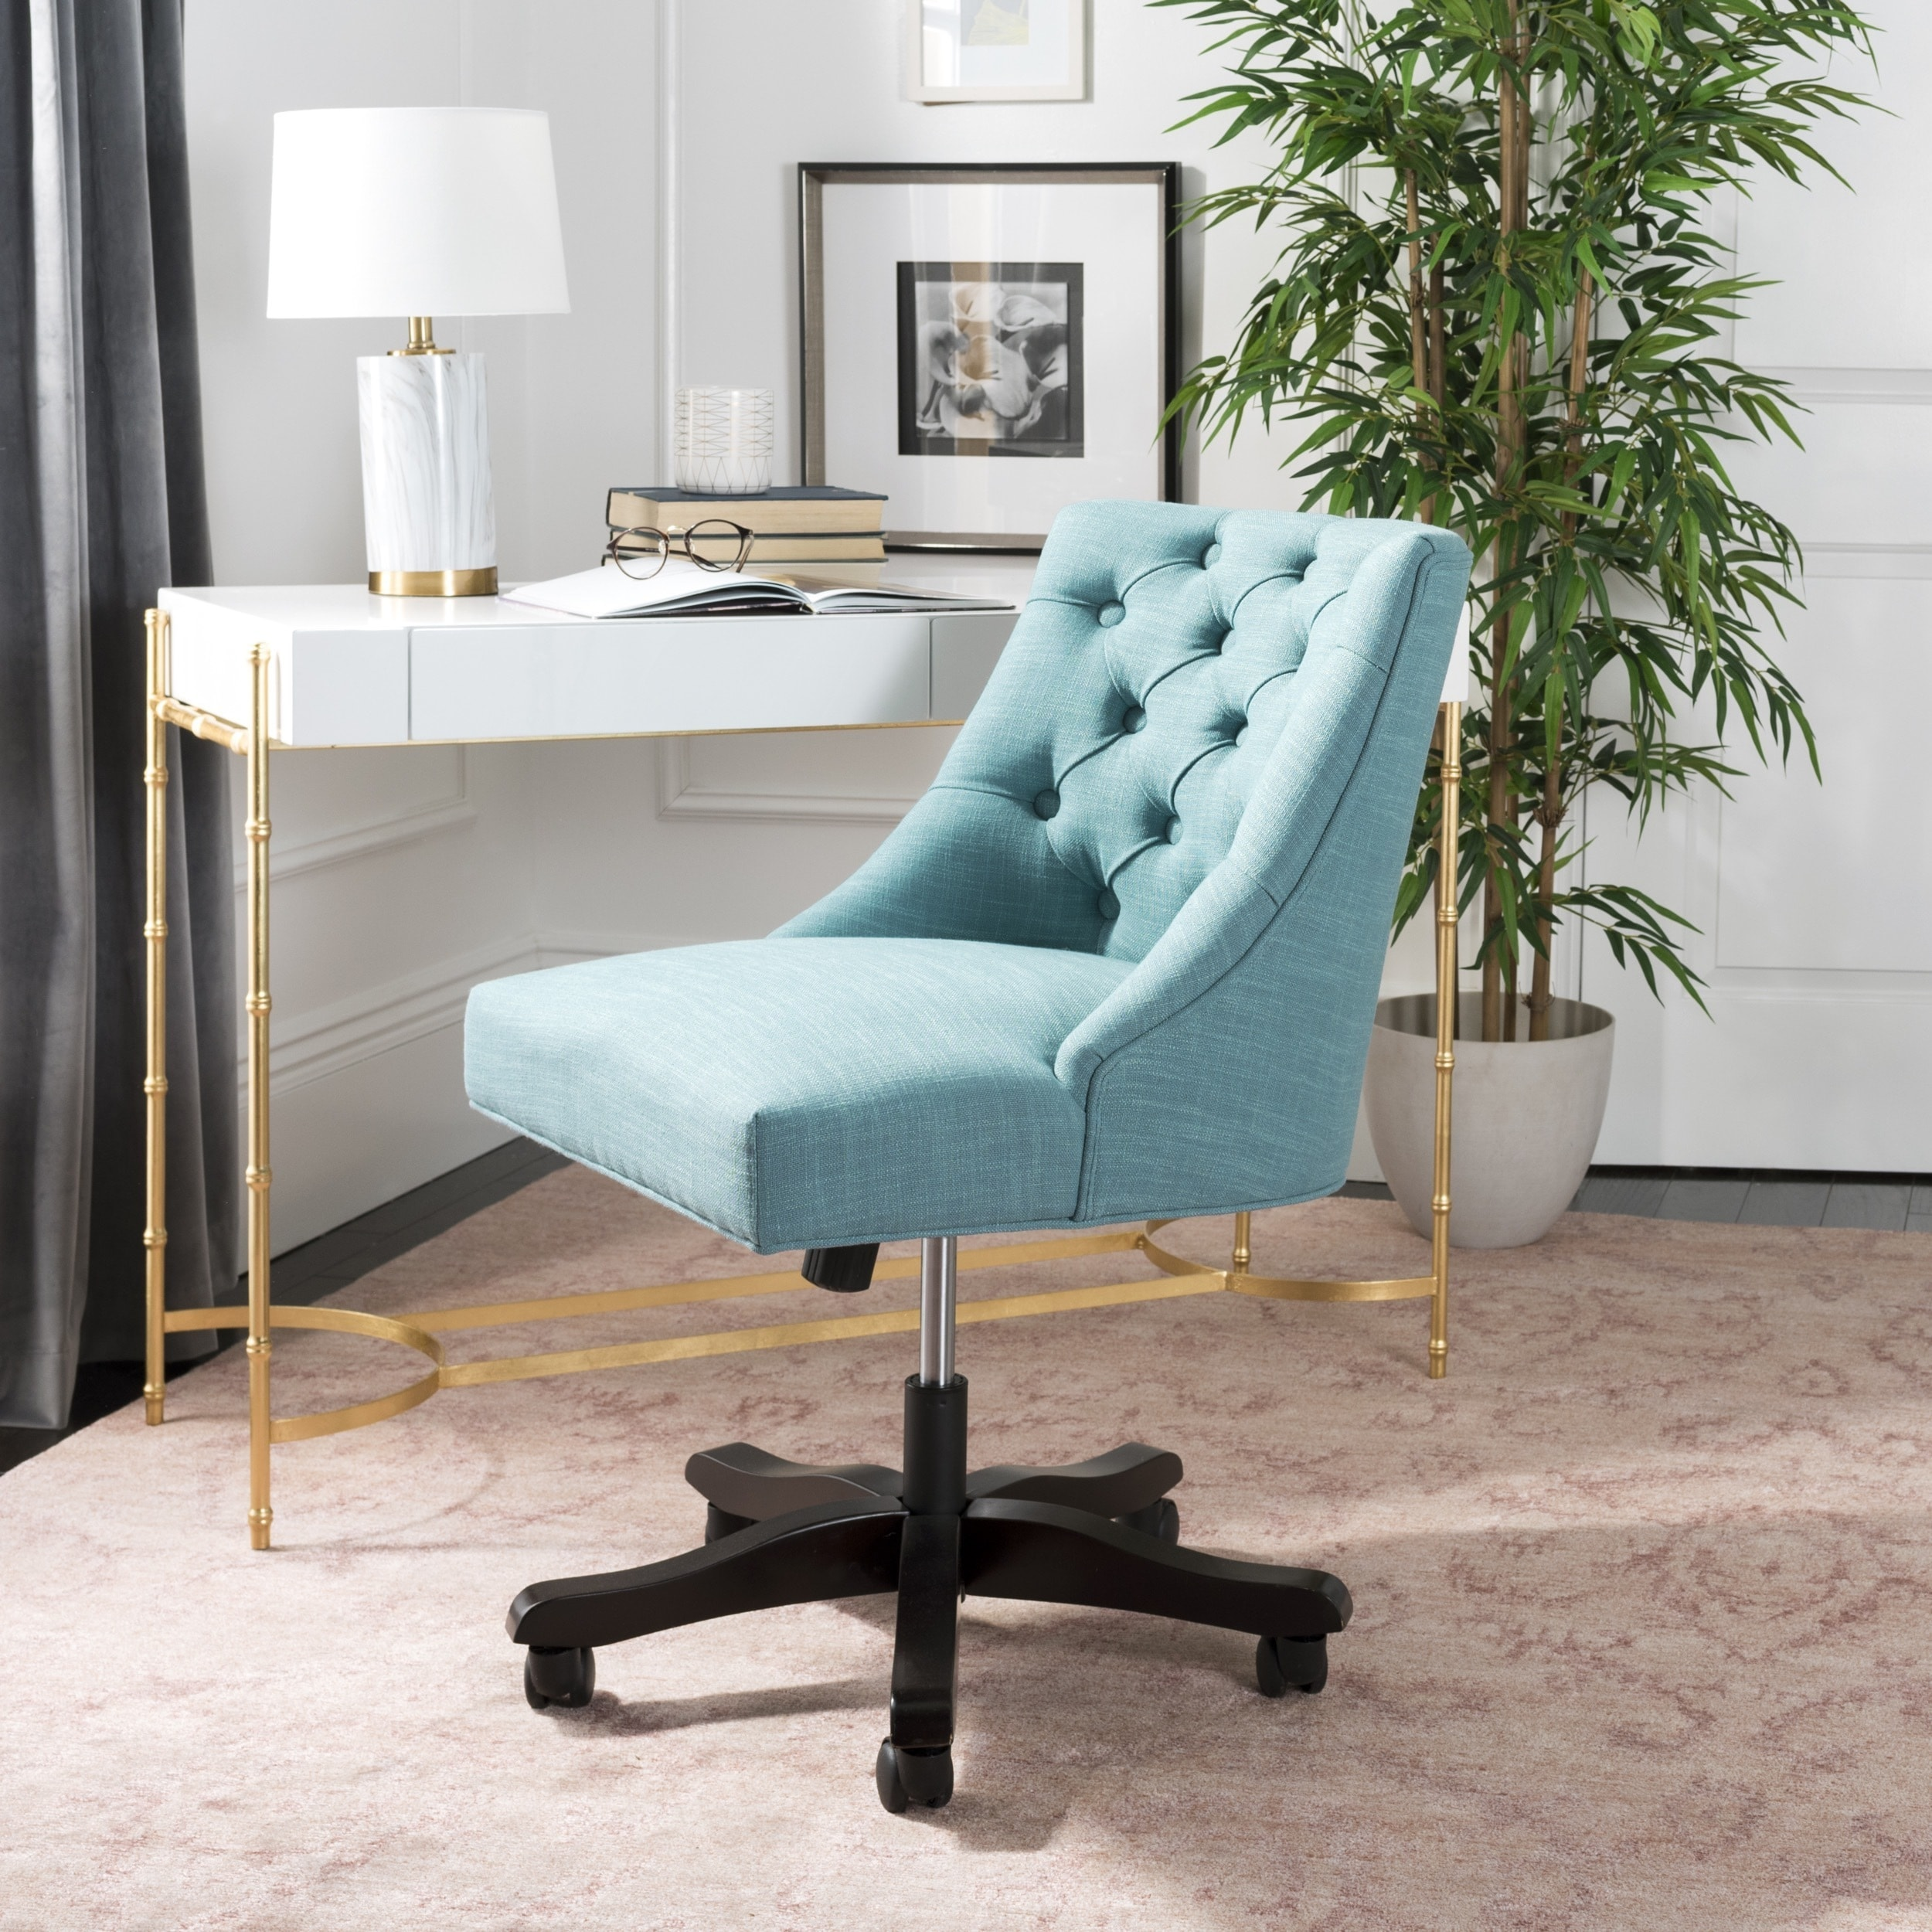 Pleasing Safavieh Soho Tufted Linen Swivel Desk Chair 25 2 X 27 2 X 33 9 Ocoug Best Dining Table And Chair Ideas Images Ocougorg